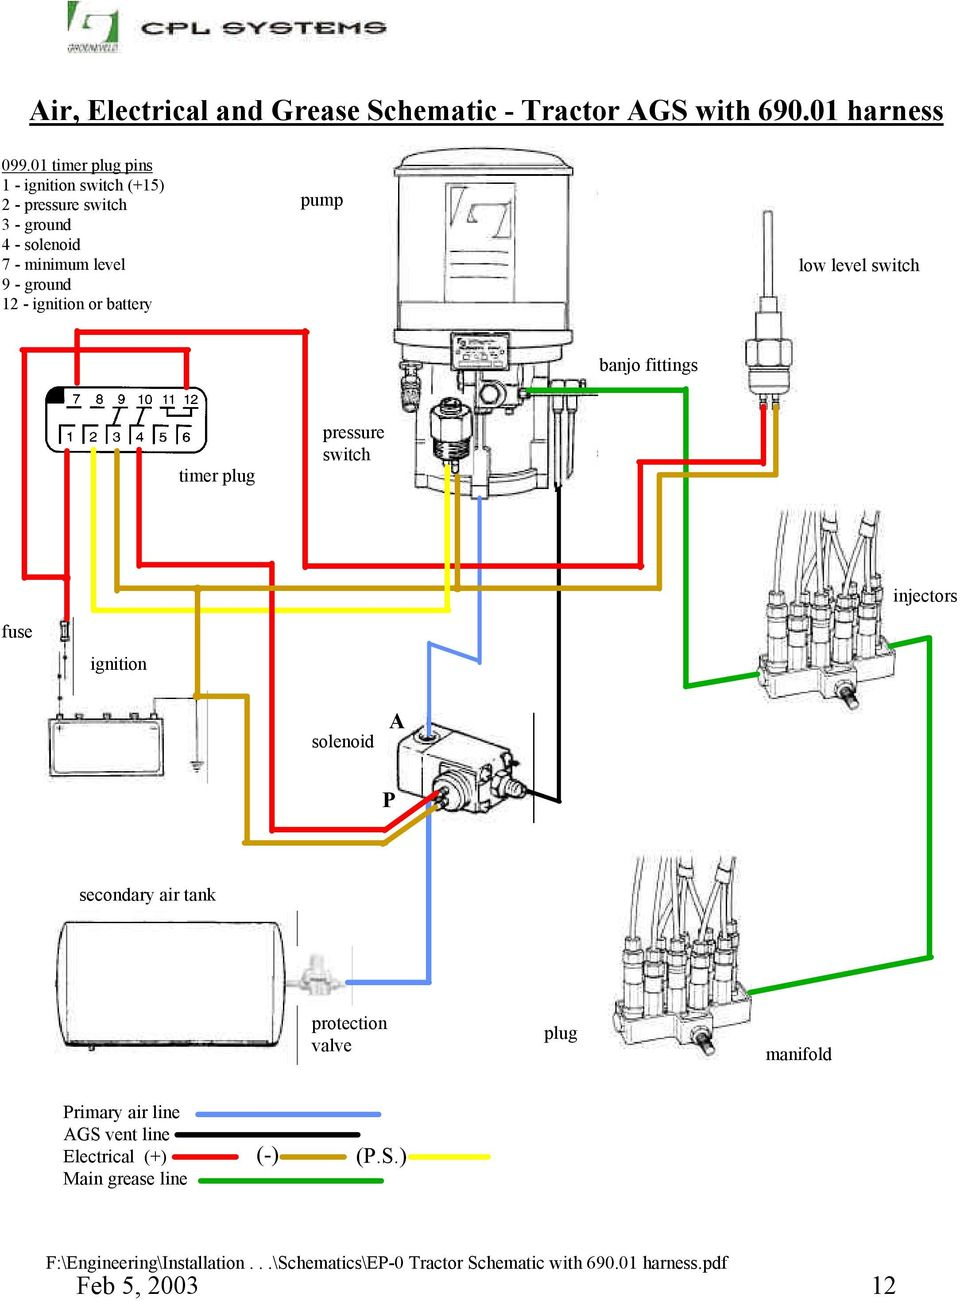 Cpl Systems Groeneveld Automatic Greasing System Complete 690 Double Light Switch Wiring Diagram Battery Pump Low Level Banjo Fittings Timer Plug Pressure Injectors Fuse Ignition Solenoid A P